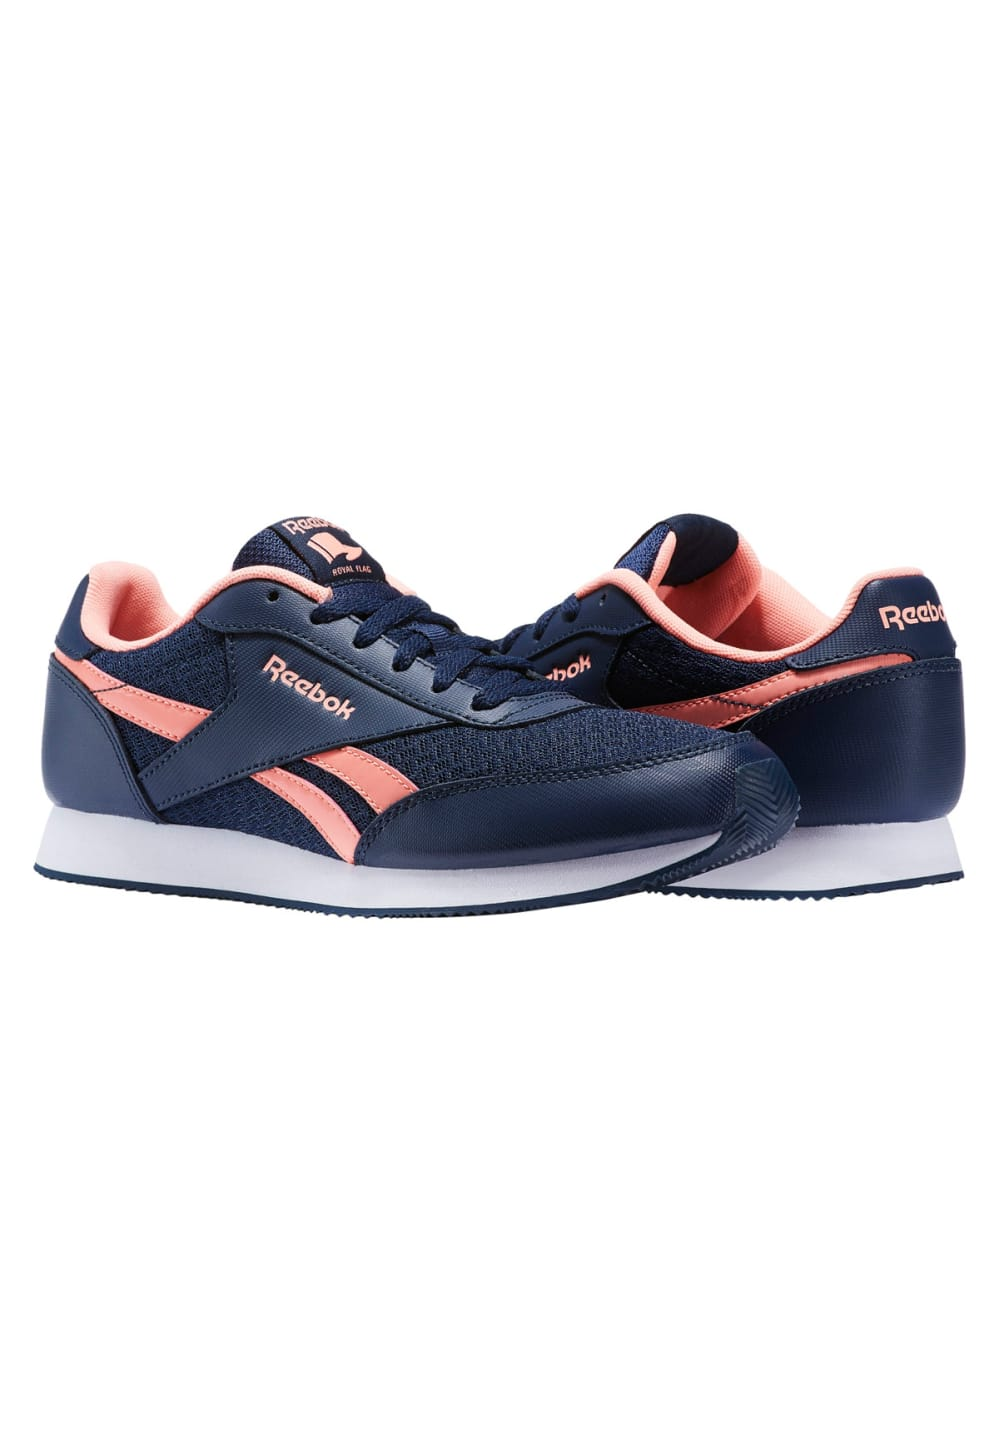 detailed look f5a9c ea29f Reebok Royal Cl Jogger 2 - Running shoes for Women - Blue